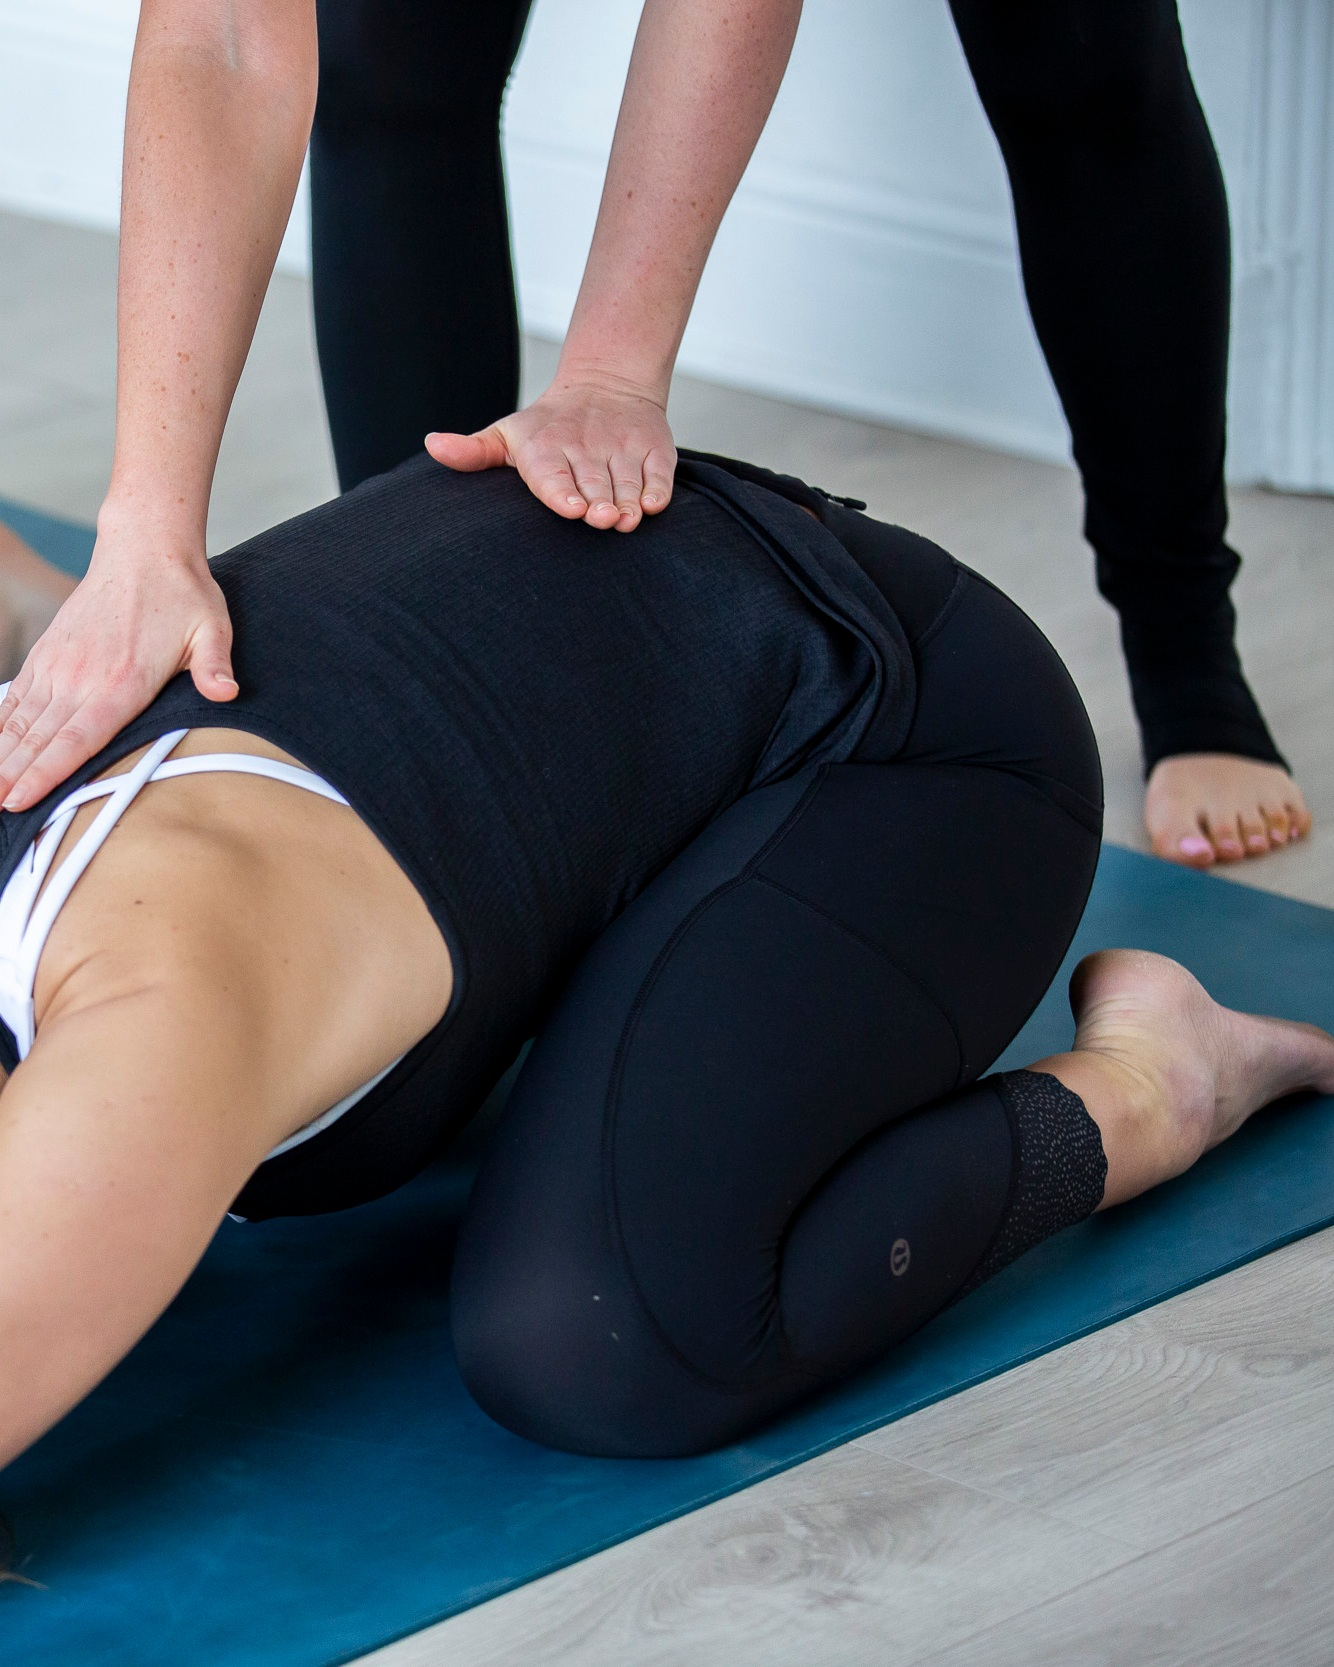 Private one to one - We offer private one to one sessions tailored to meet your needs